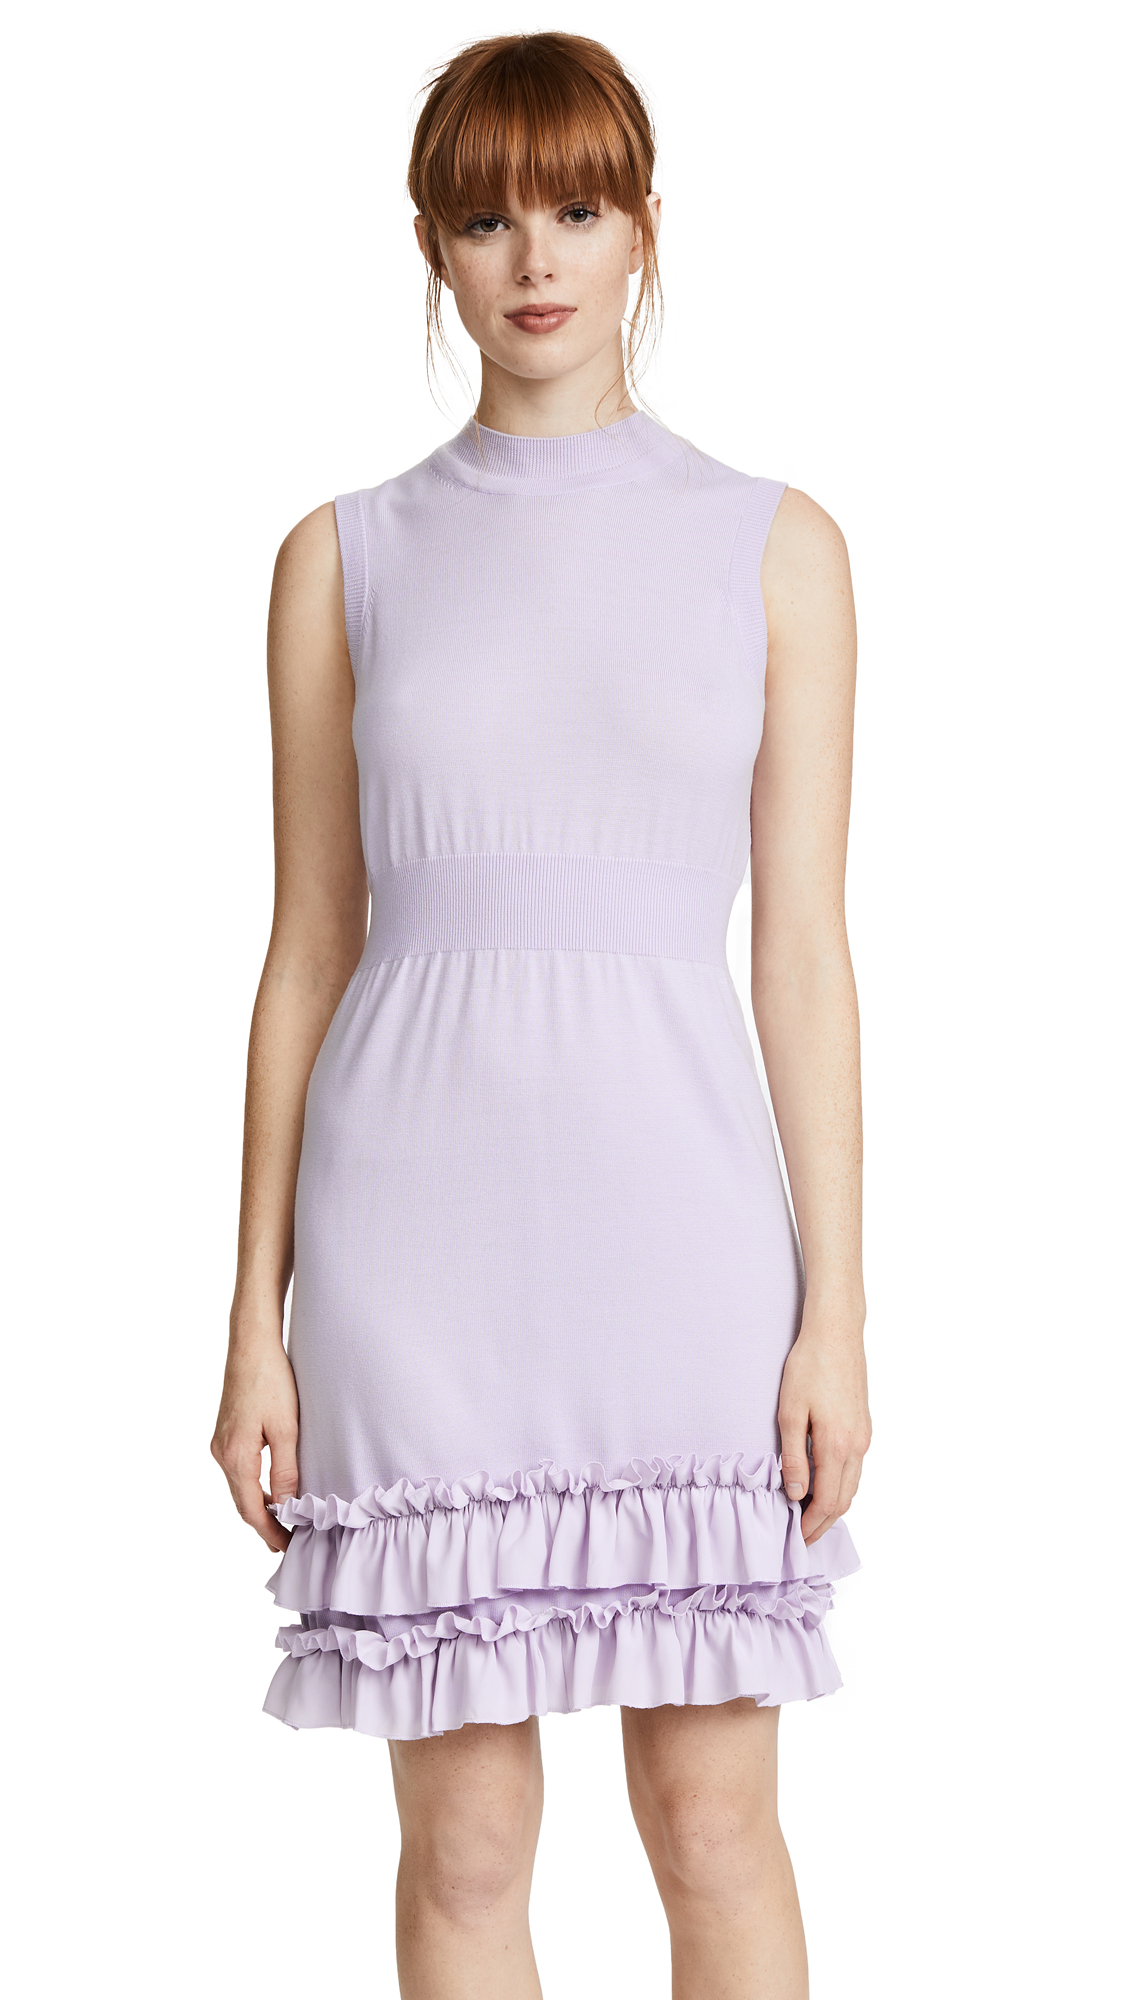 Nina Ricci Knit Dress with Ruffles - Lilac